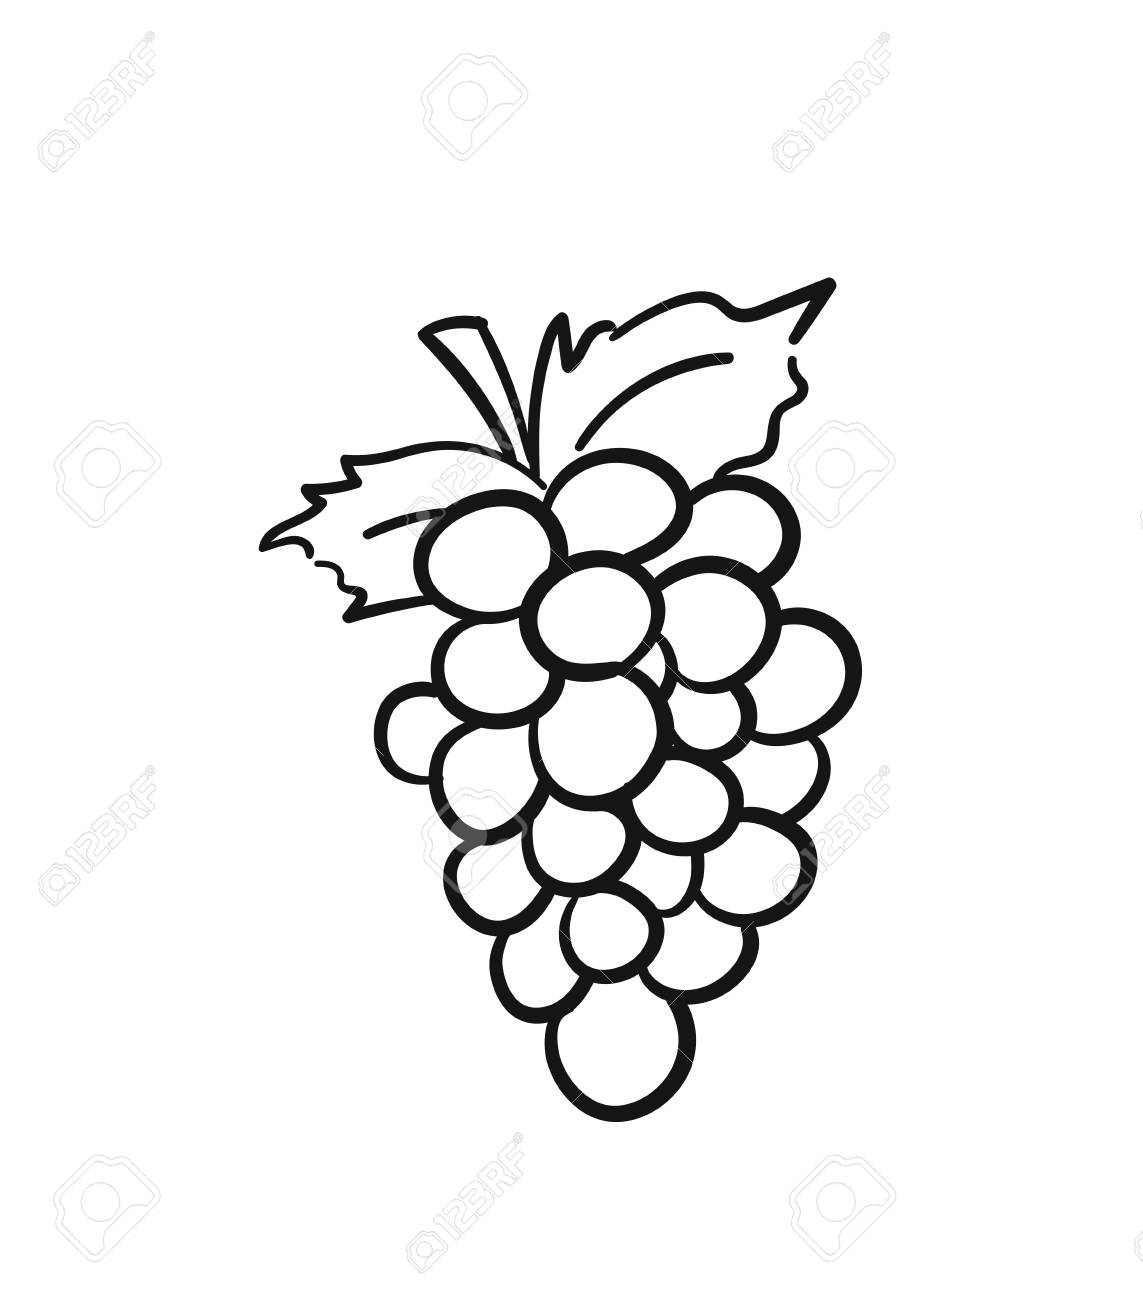 Bunch Of Grapes With Leaf Sketch Icon For Web Mobile And Infographics Royalty Free Cliparts Vectors And Stock Illustration Image 95847516